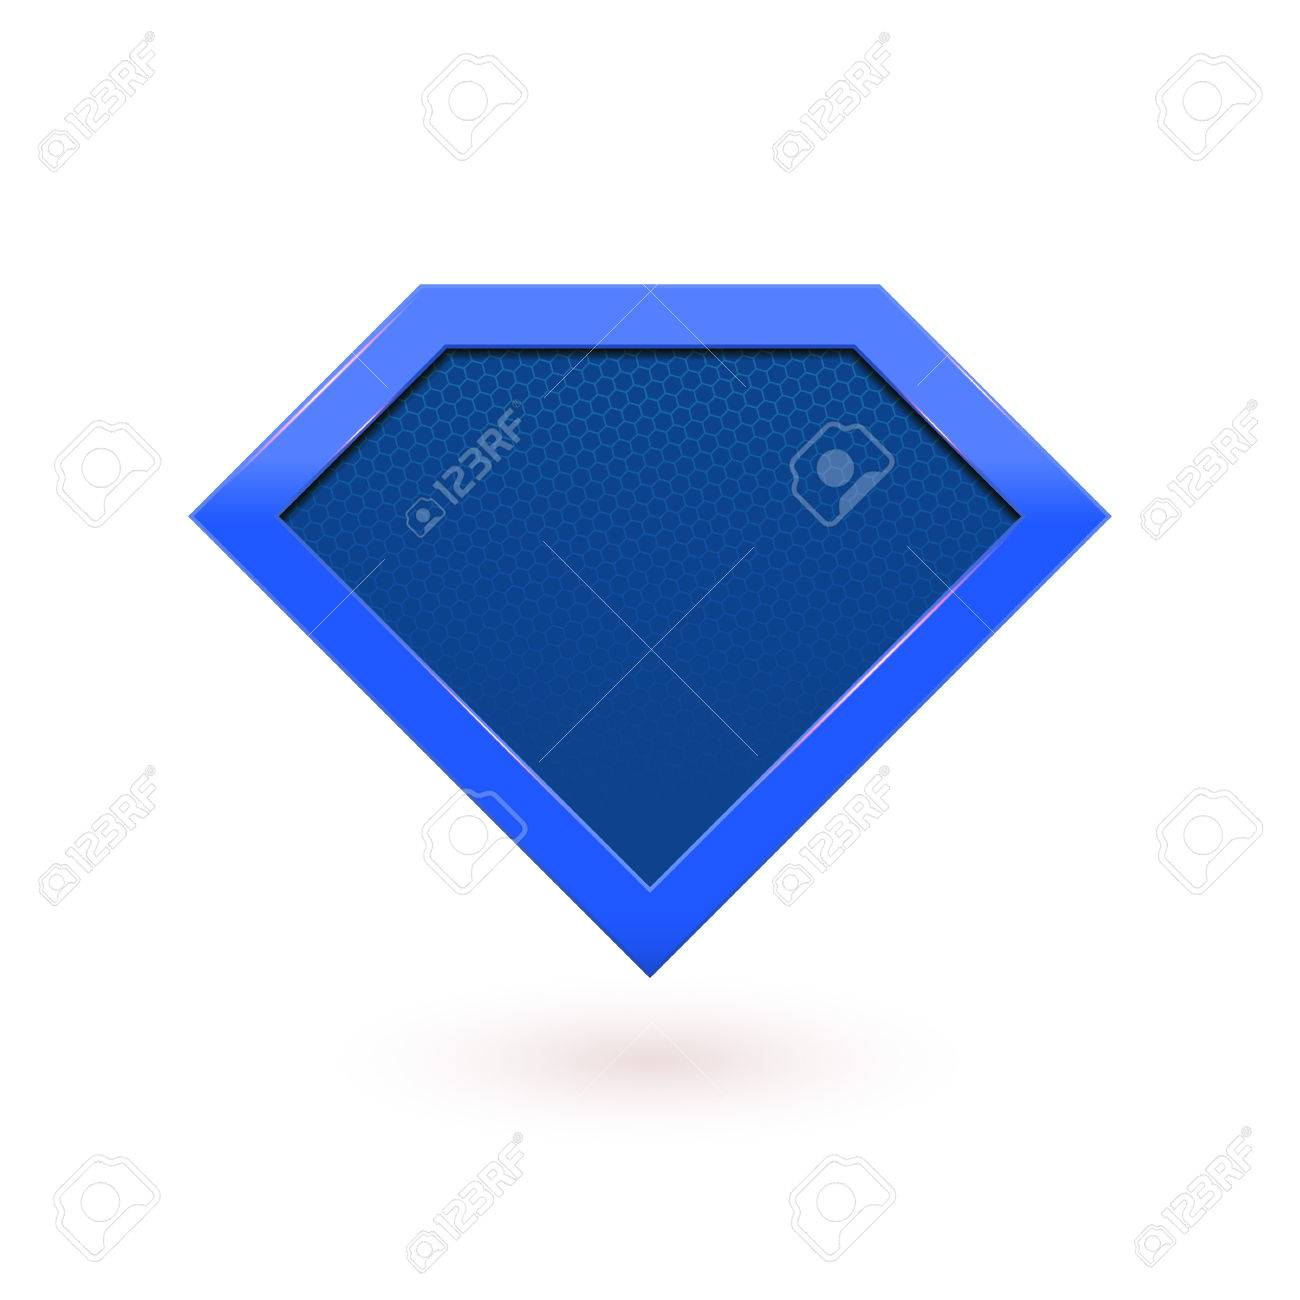 Super hero comic character emblem  Blue shield icon  Vector diamond